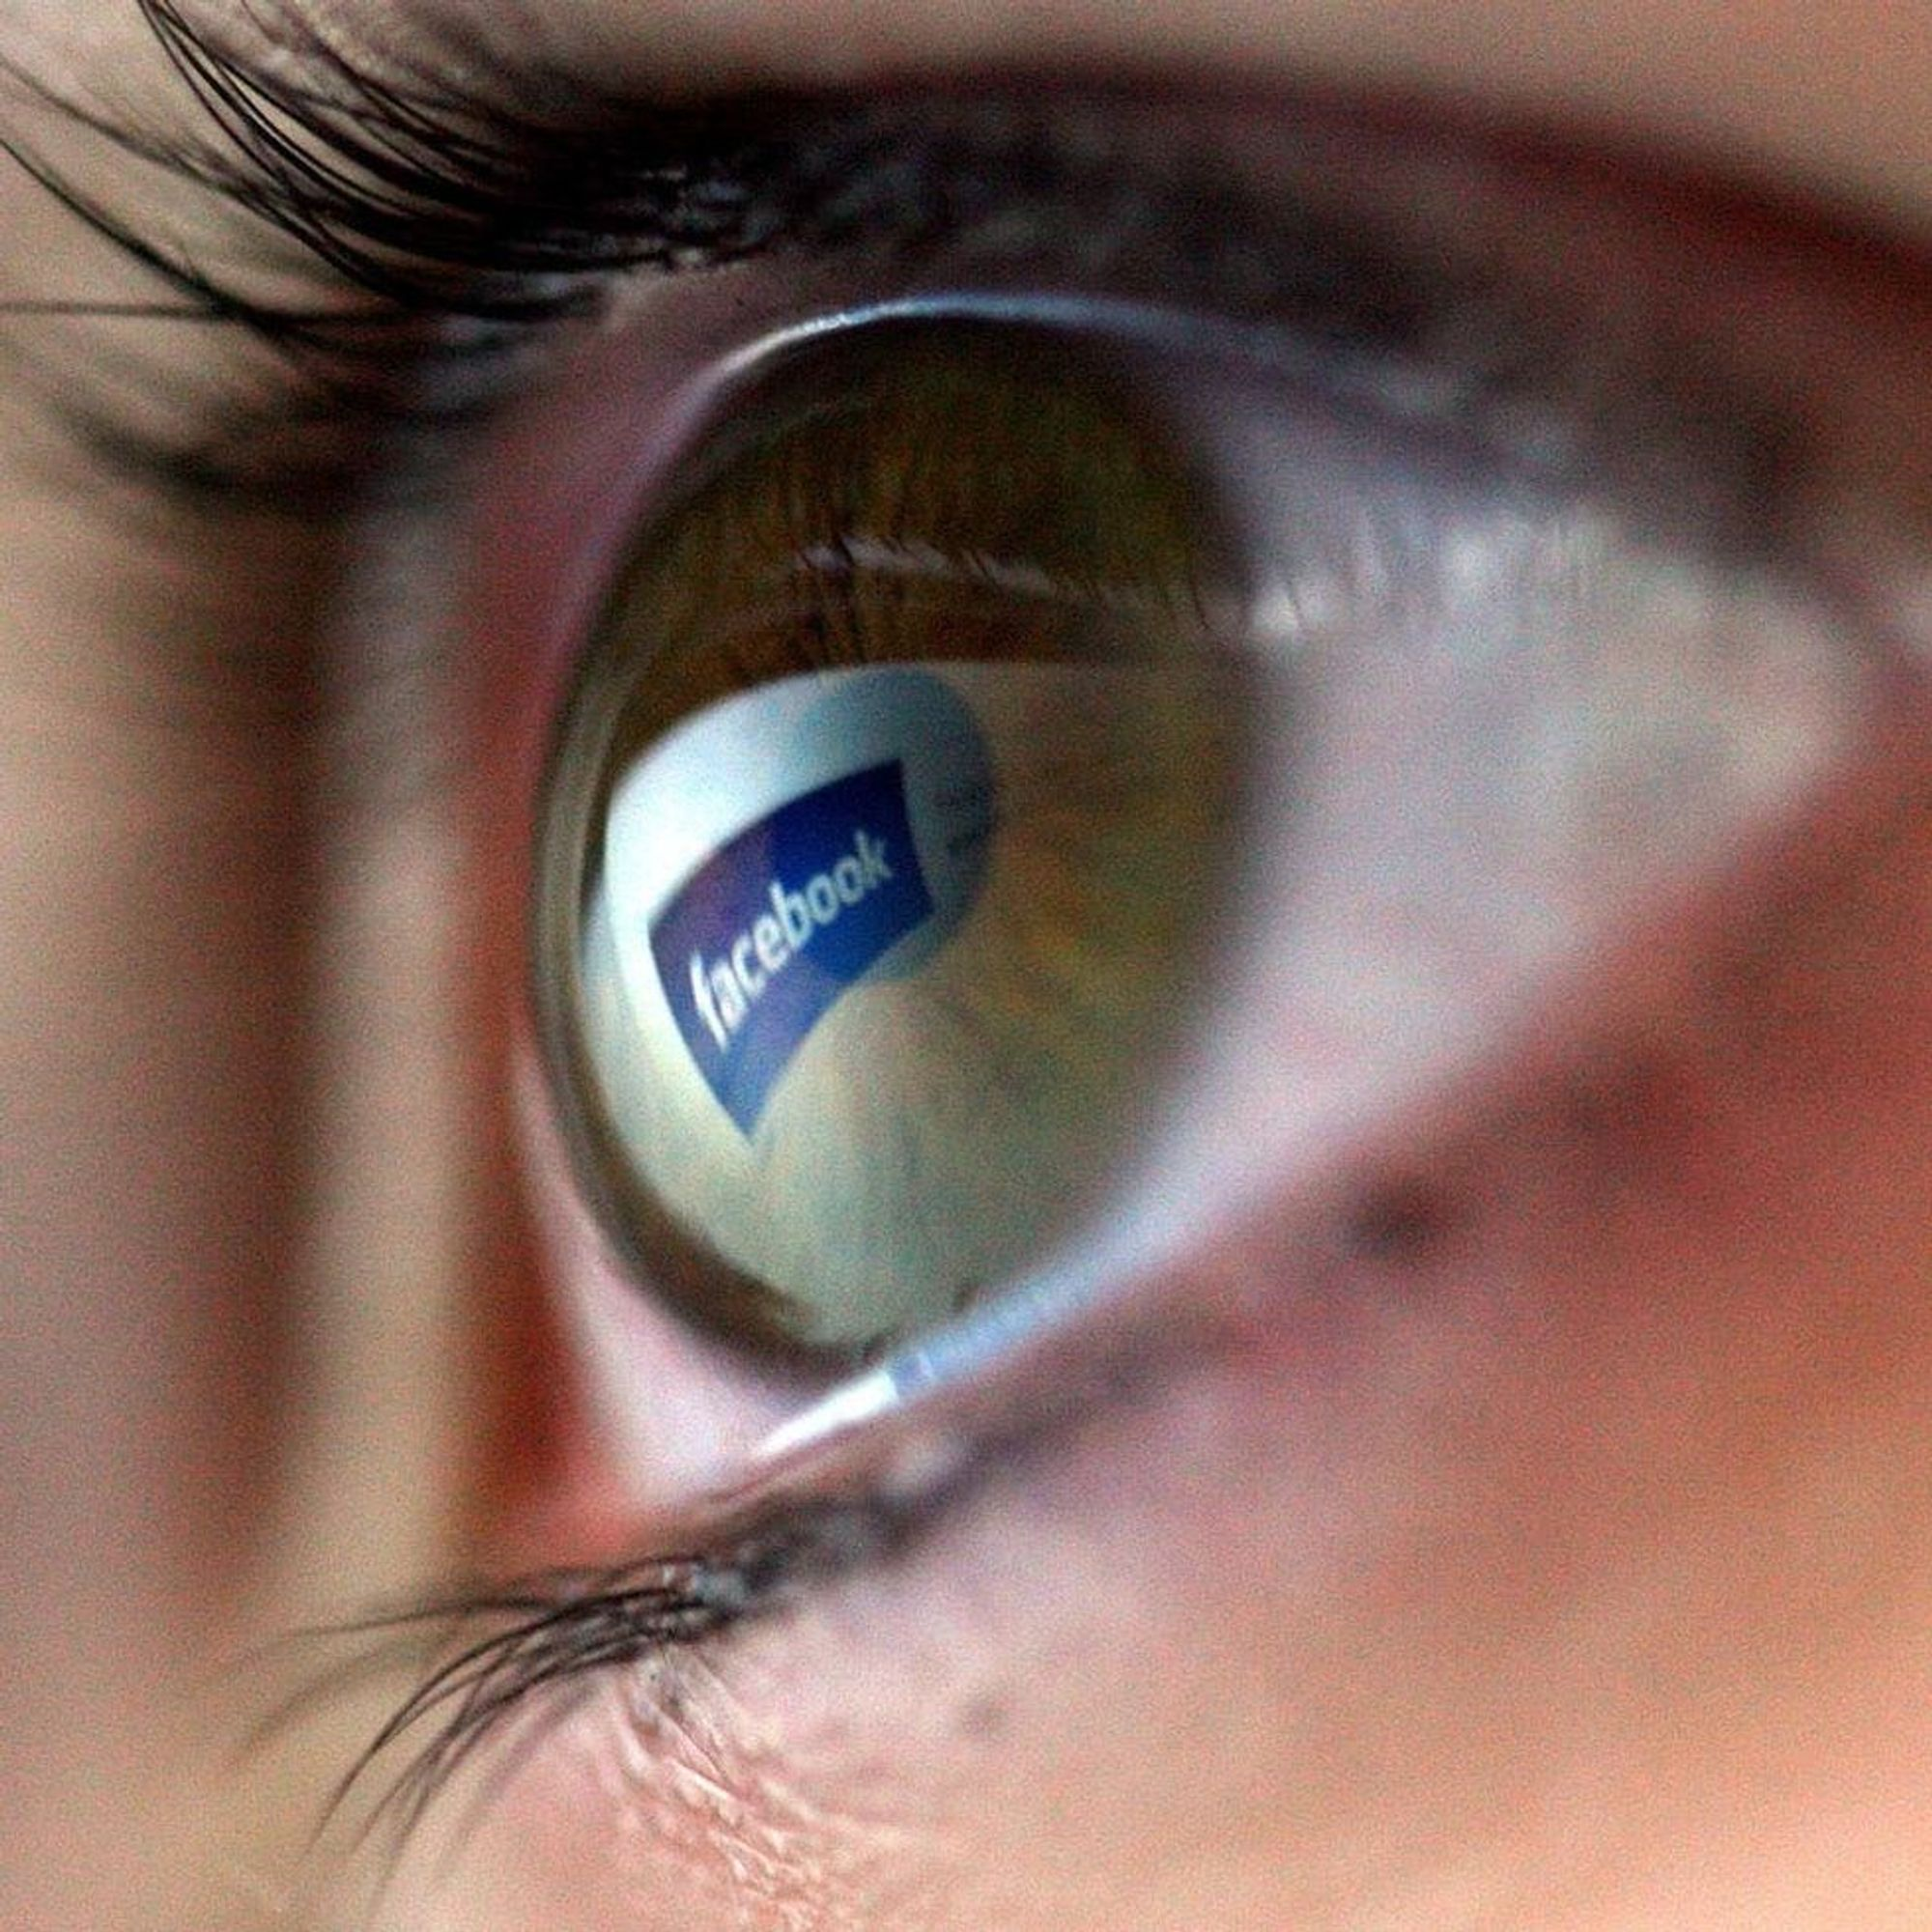 Deleting Facebook Won't Protect Your Information, But Doing This Will